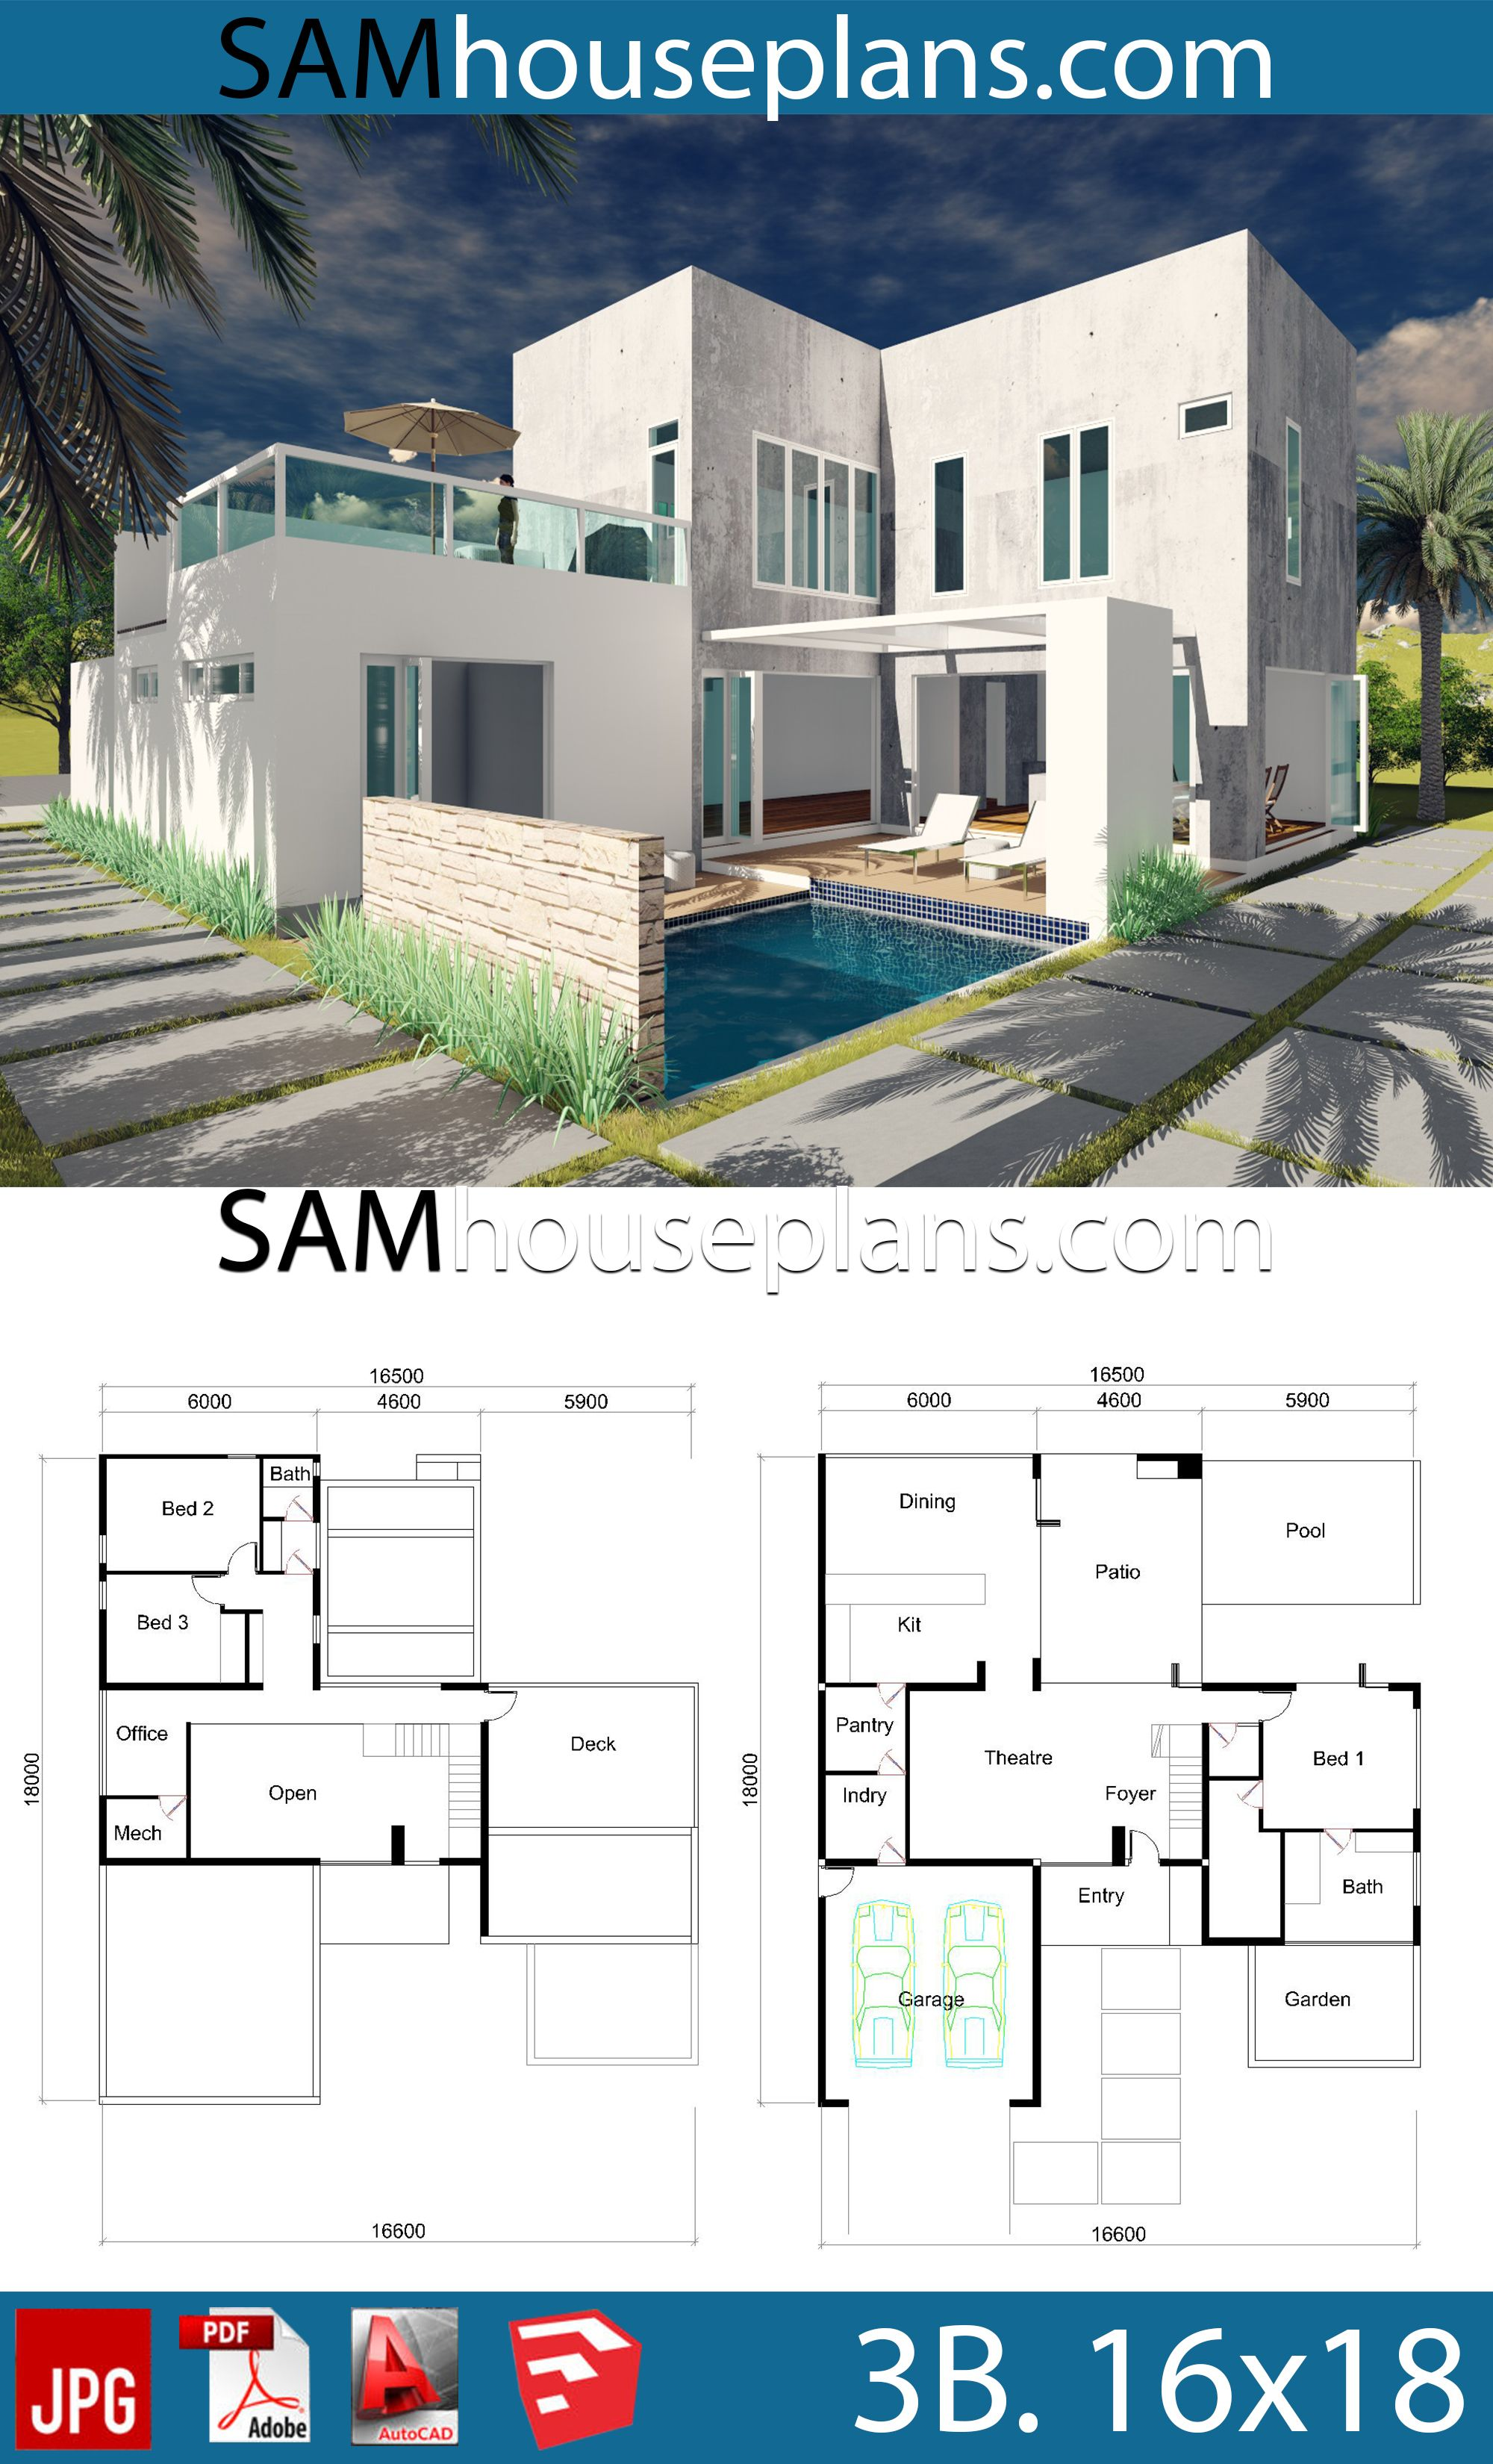 House Plans 16x18 With 3 Bedrooms House Plans Free Downloads Modern House Floor Plans Bungalow House Design House Plans